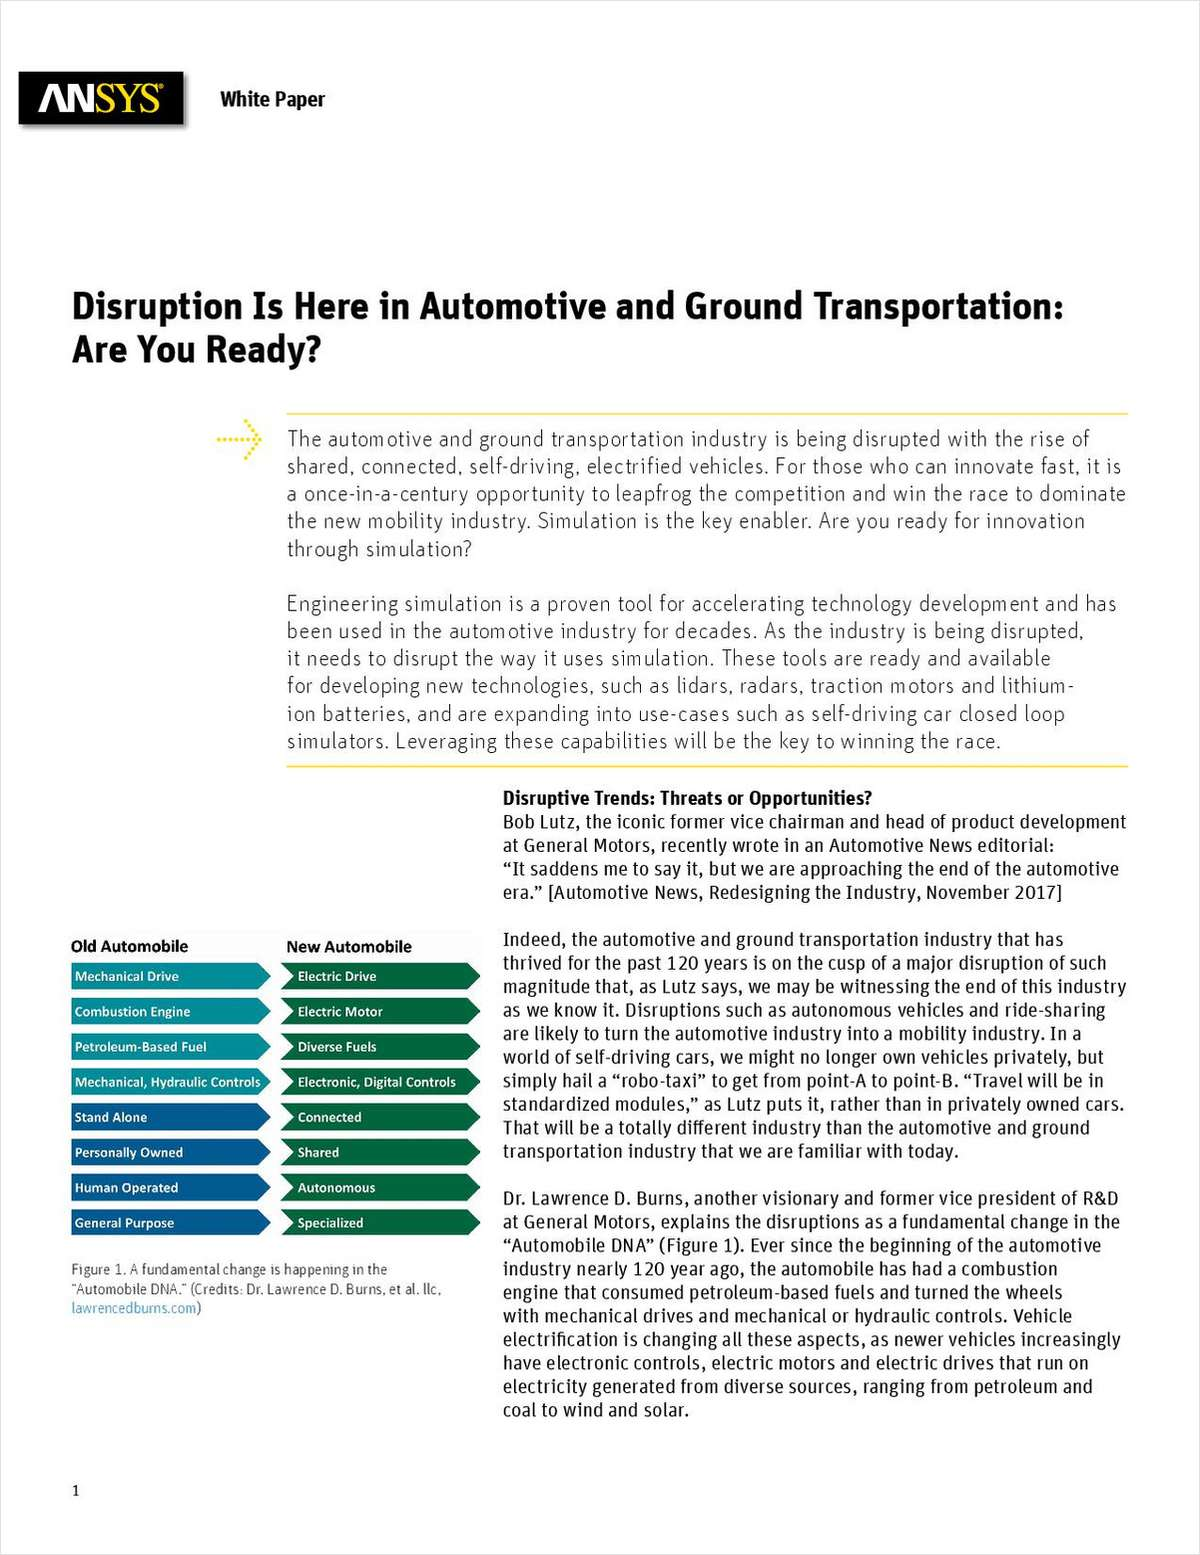 Disruption Is Here in Automotive and Ground Transportation